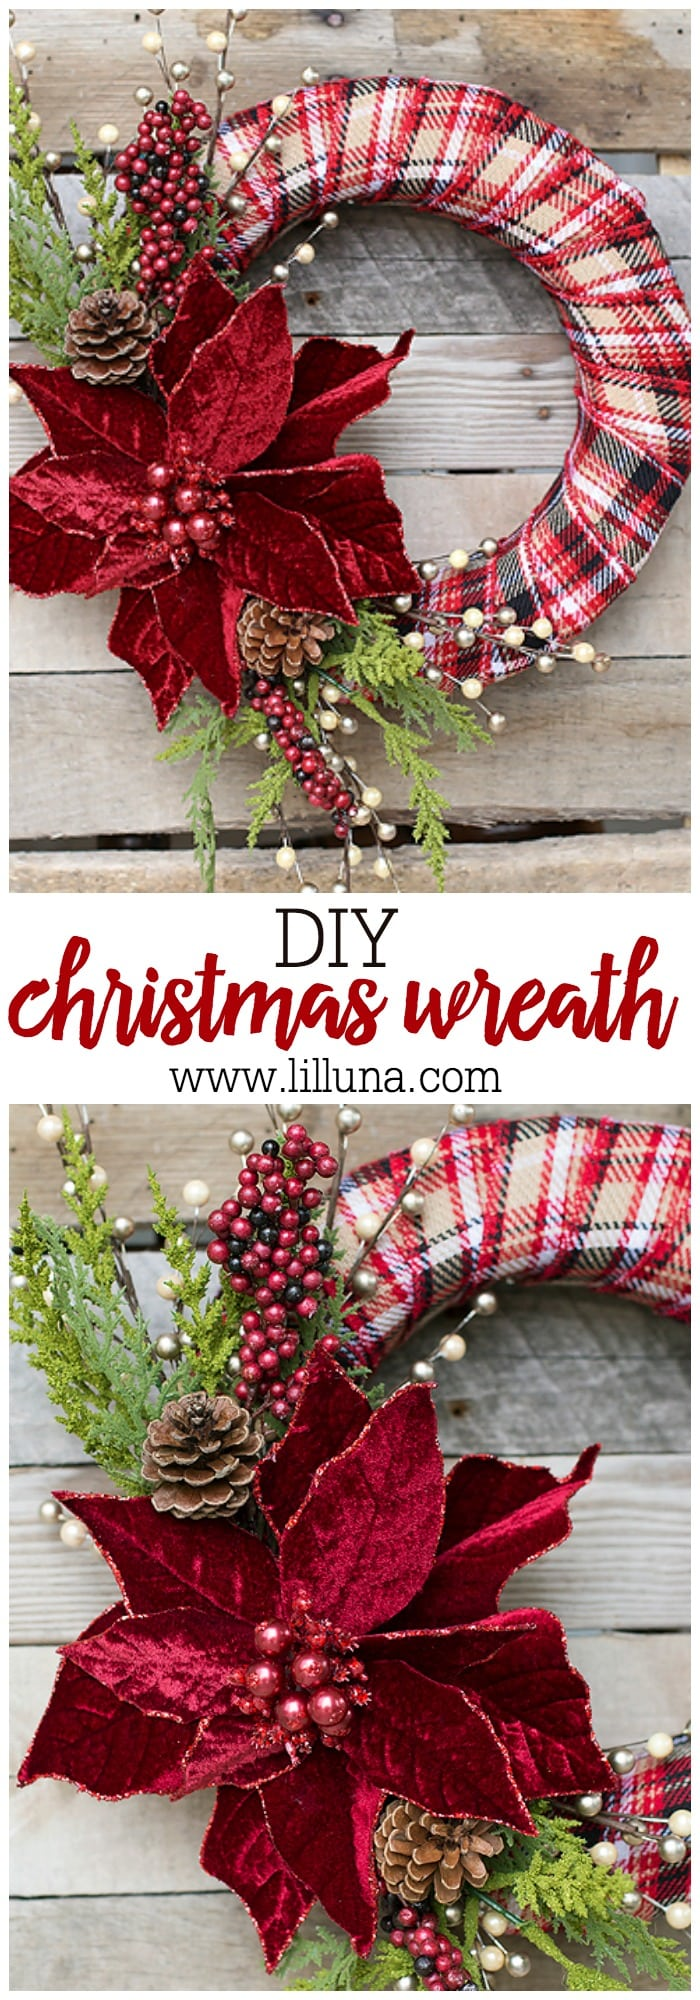 DIY Christmas Wreath - Lil' Luna